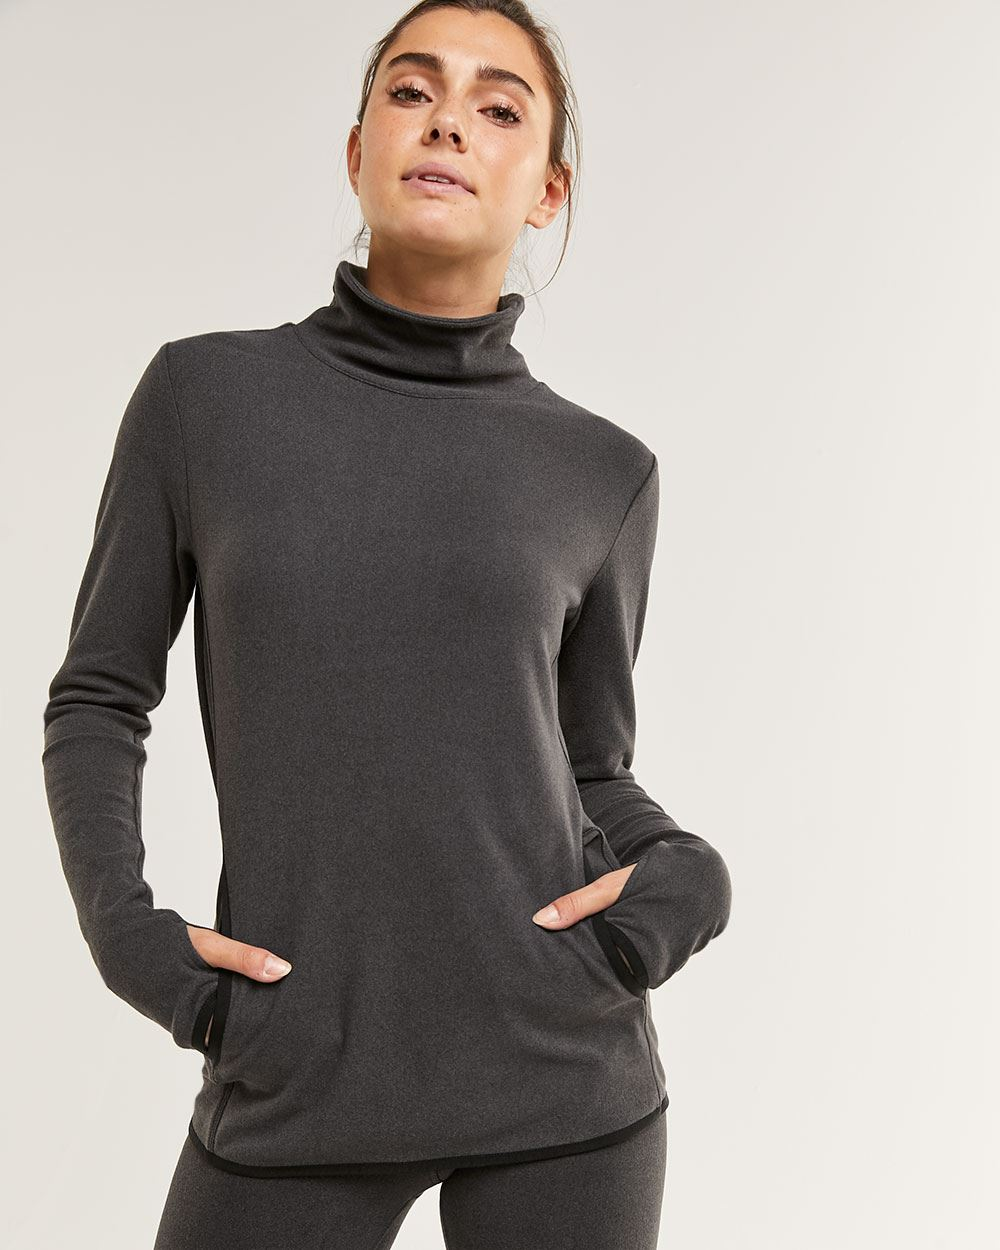 Long Sleeve Mock Neck Polar Top Hyba